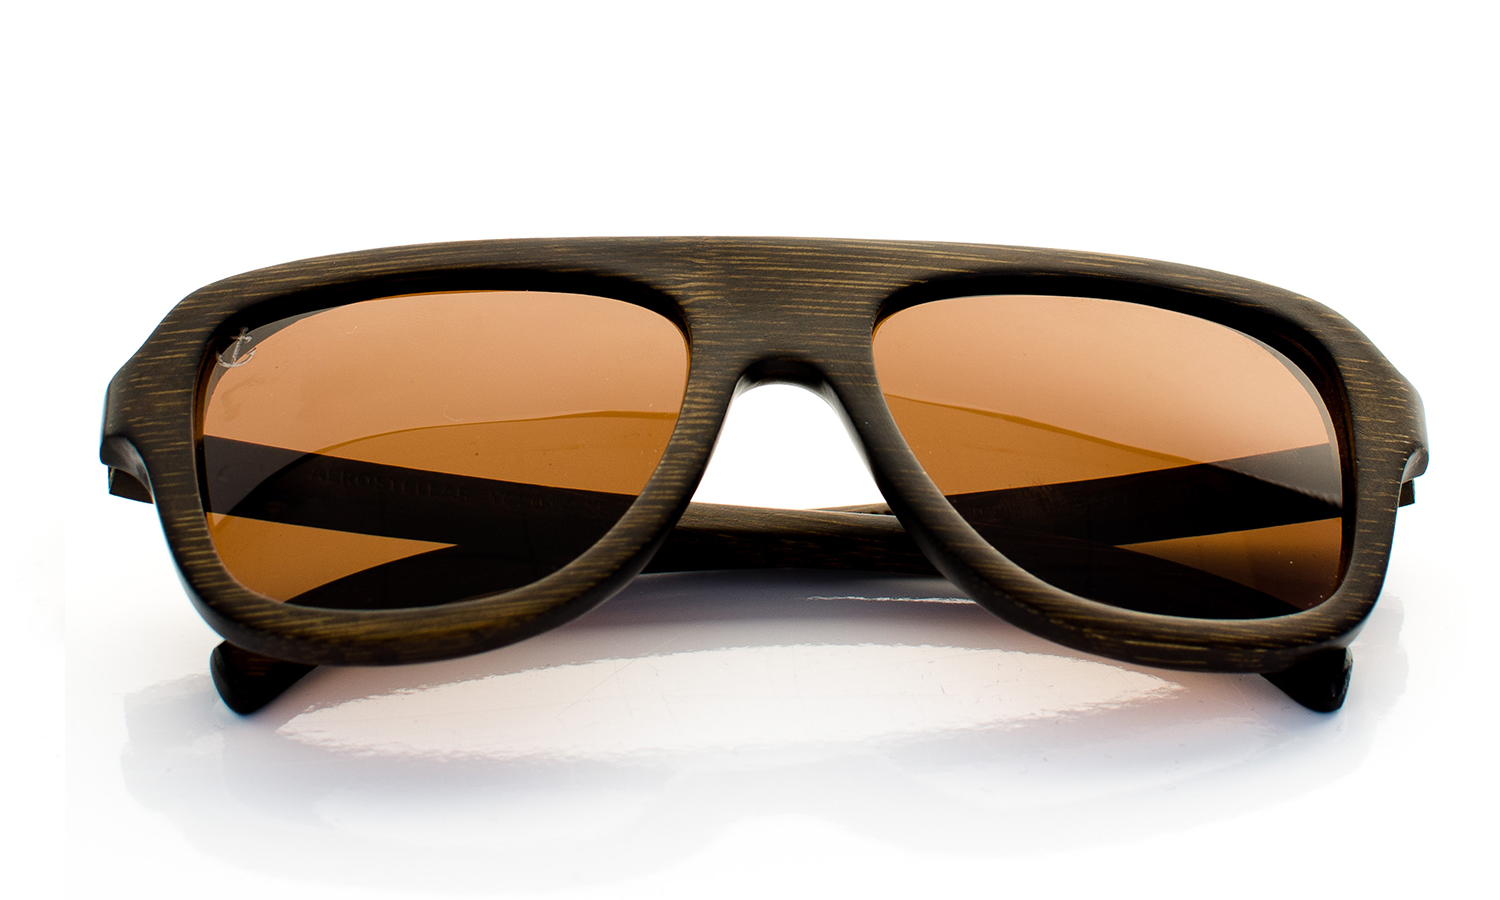 Aerostellar Wooden Eyewear Brown Bamboo Wood - Top View